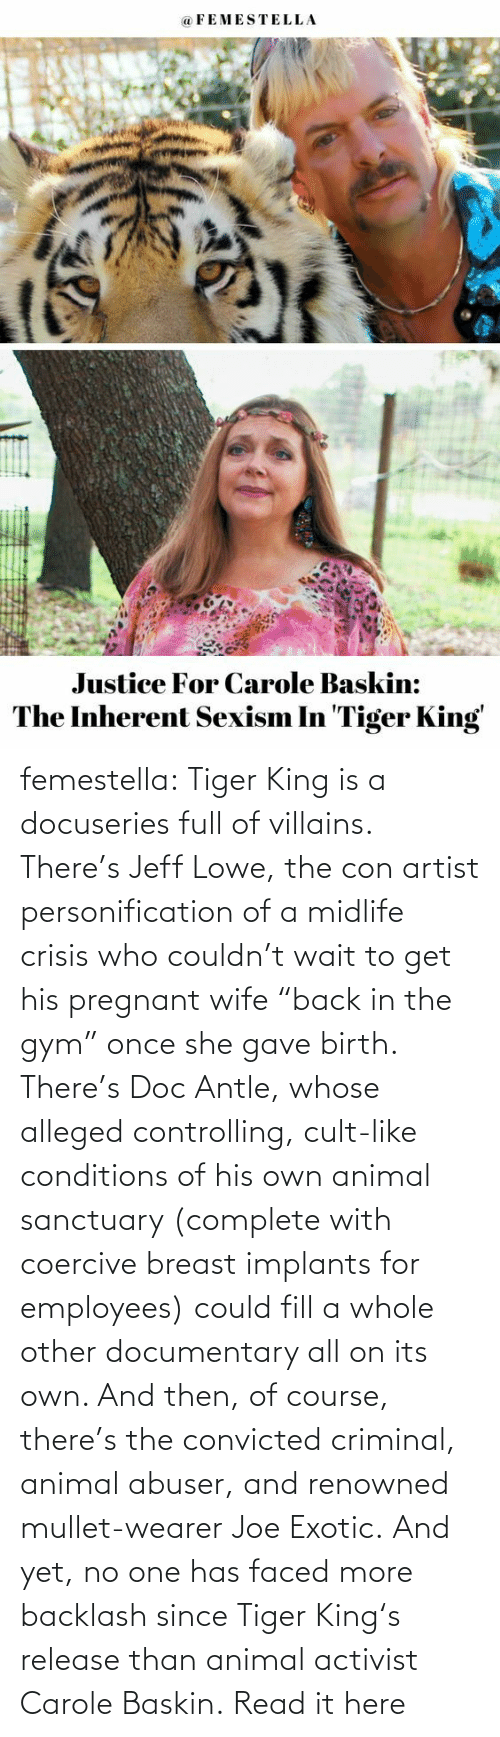 "joe: femestella: Tiger King is a docuseries full of villains. There's Jeff Lowe, the con artist personification of a midlife crisis who couldn't wait to get his pregnant wife ""back in the gym"" once she gave birth. There's Doc Antle, whose alleged controlling, cult-like conditions of his own animal sanctuary (complete with coercive breast implants for employees) could fill a whole other documentary all on its own. And then, of course, there's the convicted criminal, animal abuser, and renowned mullet-wearer Joe Exotic. And yet, no one has faced more backlash since Tiger King's release than animal activist Carole Baskin. Read it here"